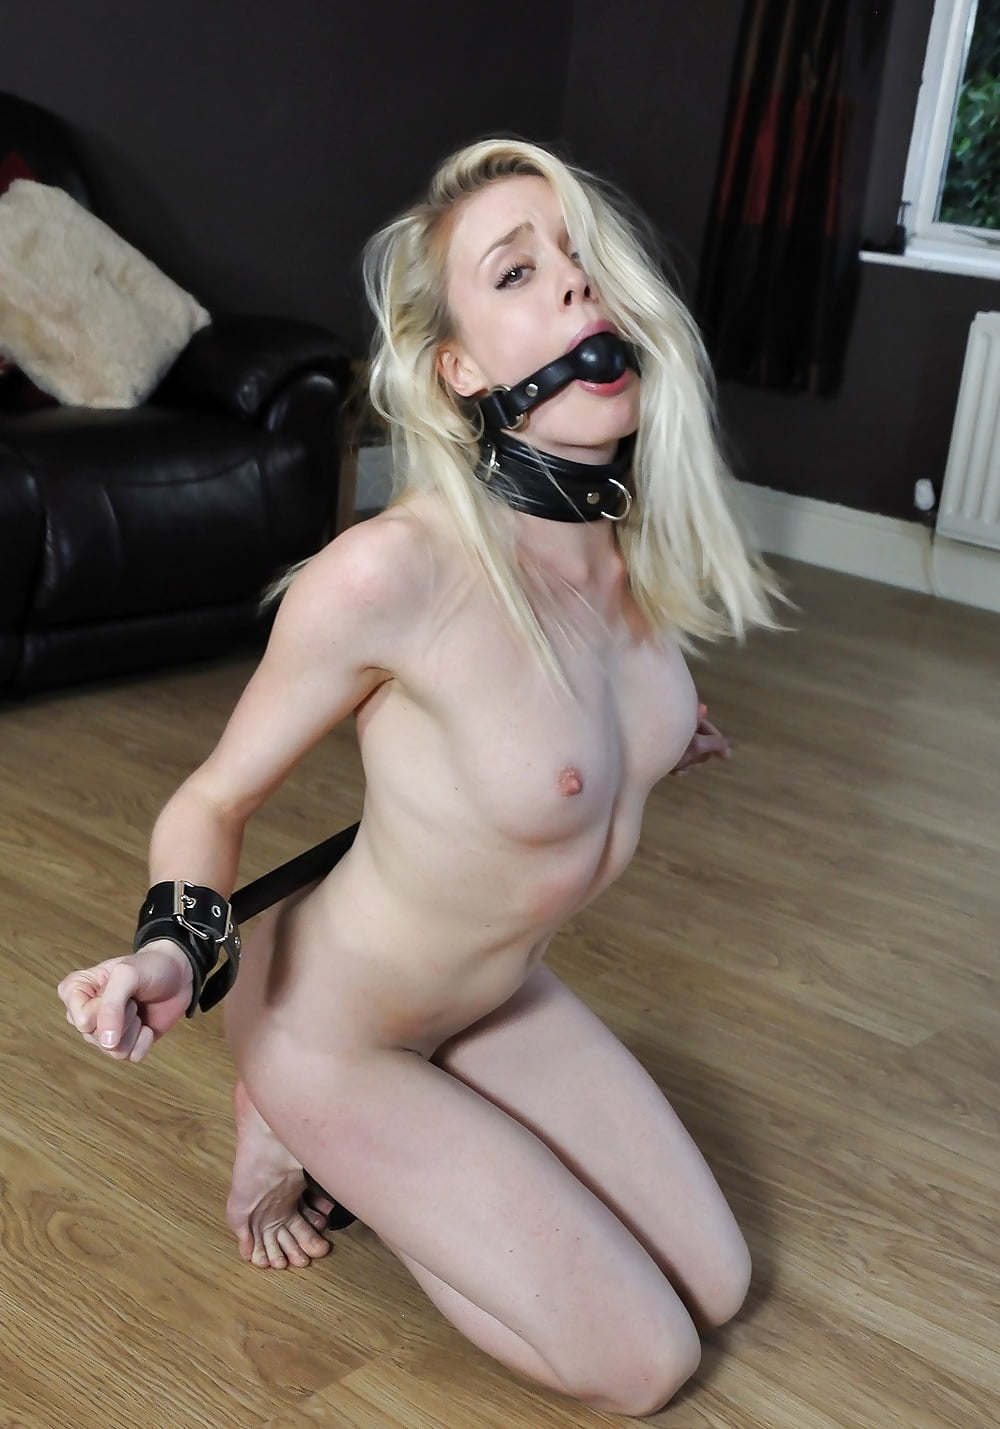 Sexy hot nude lady gag grils prons